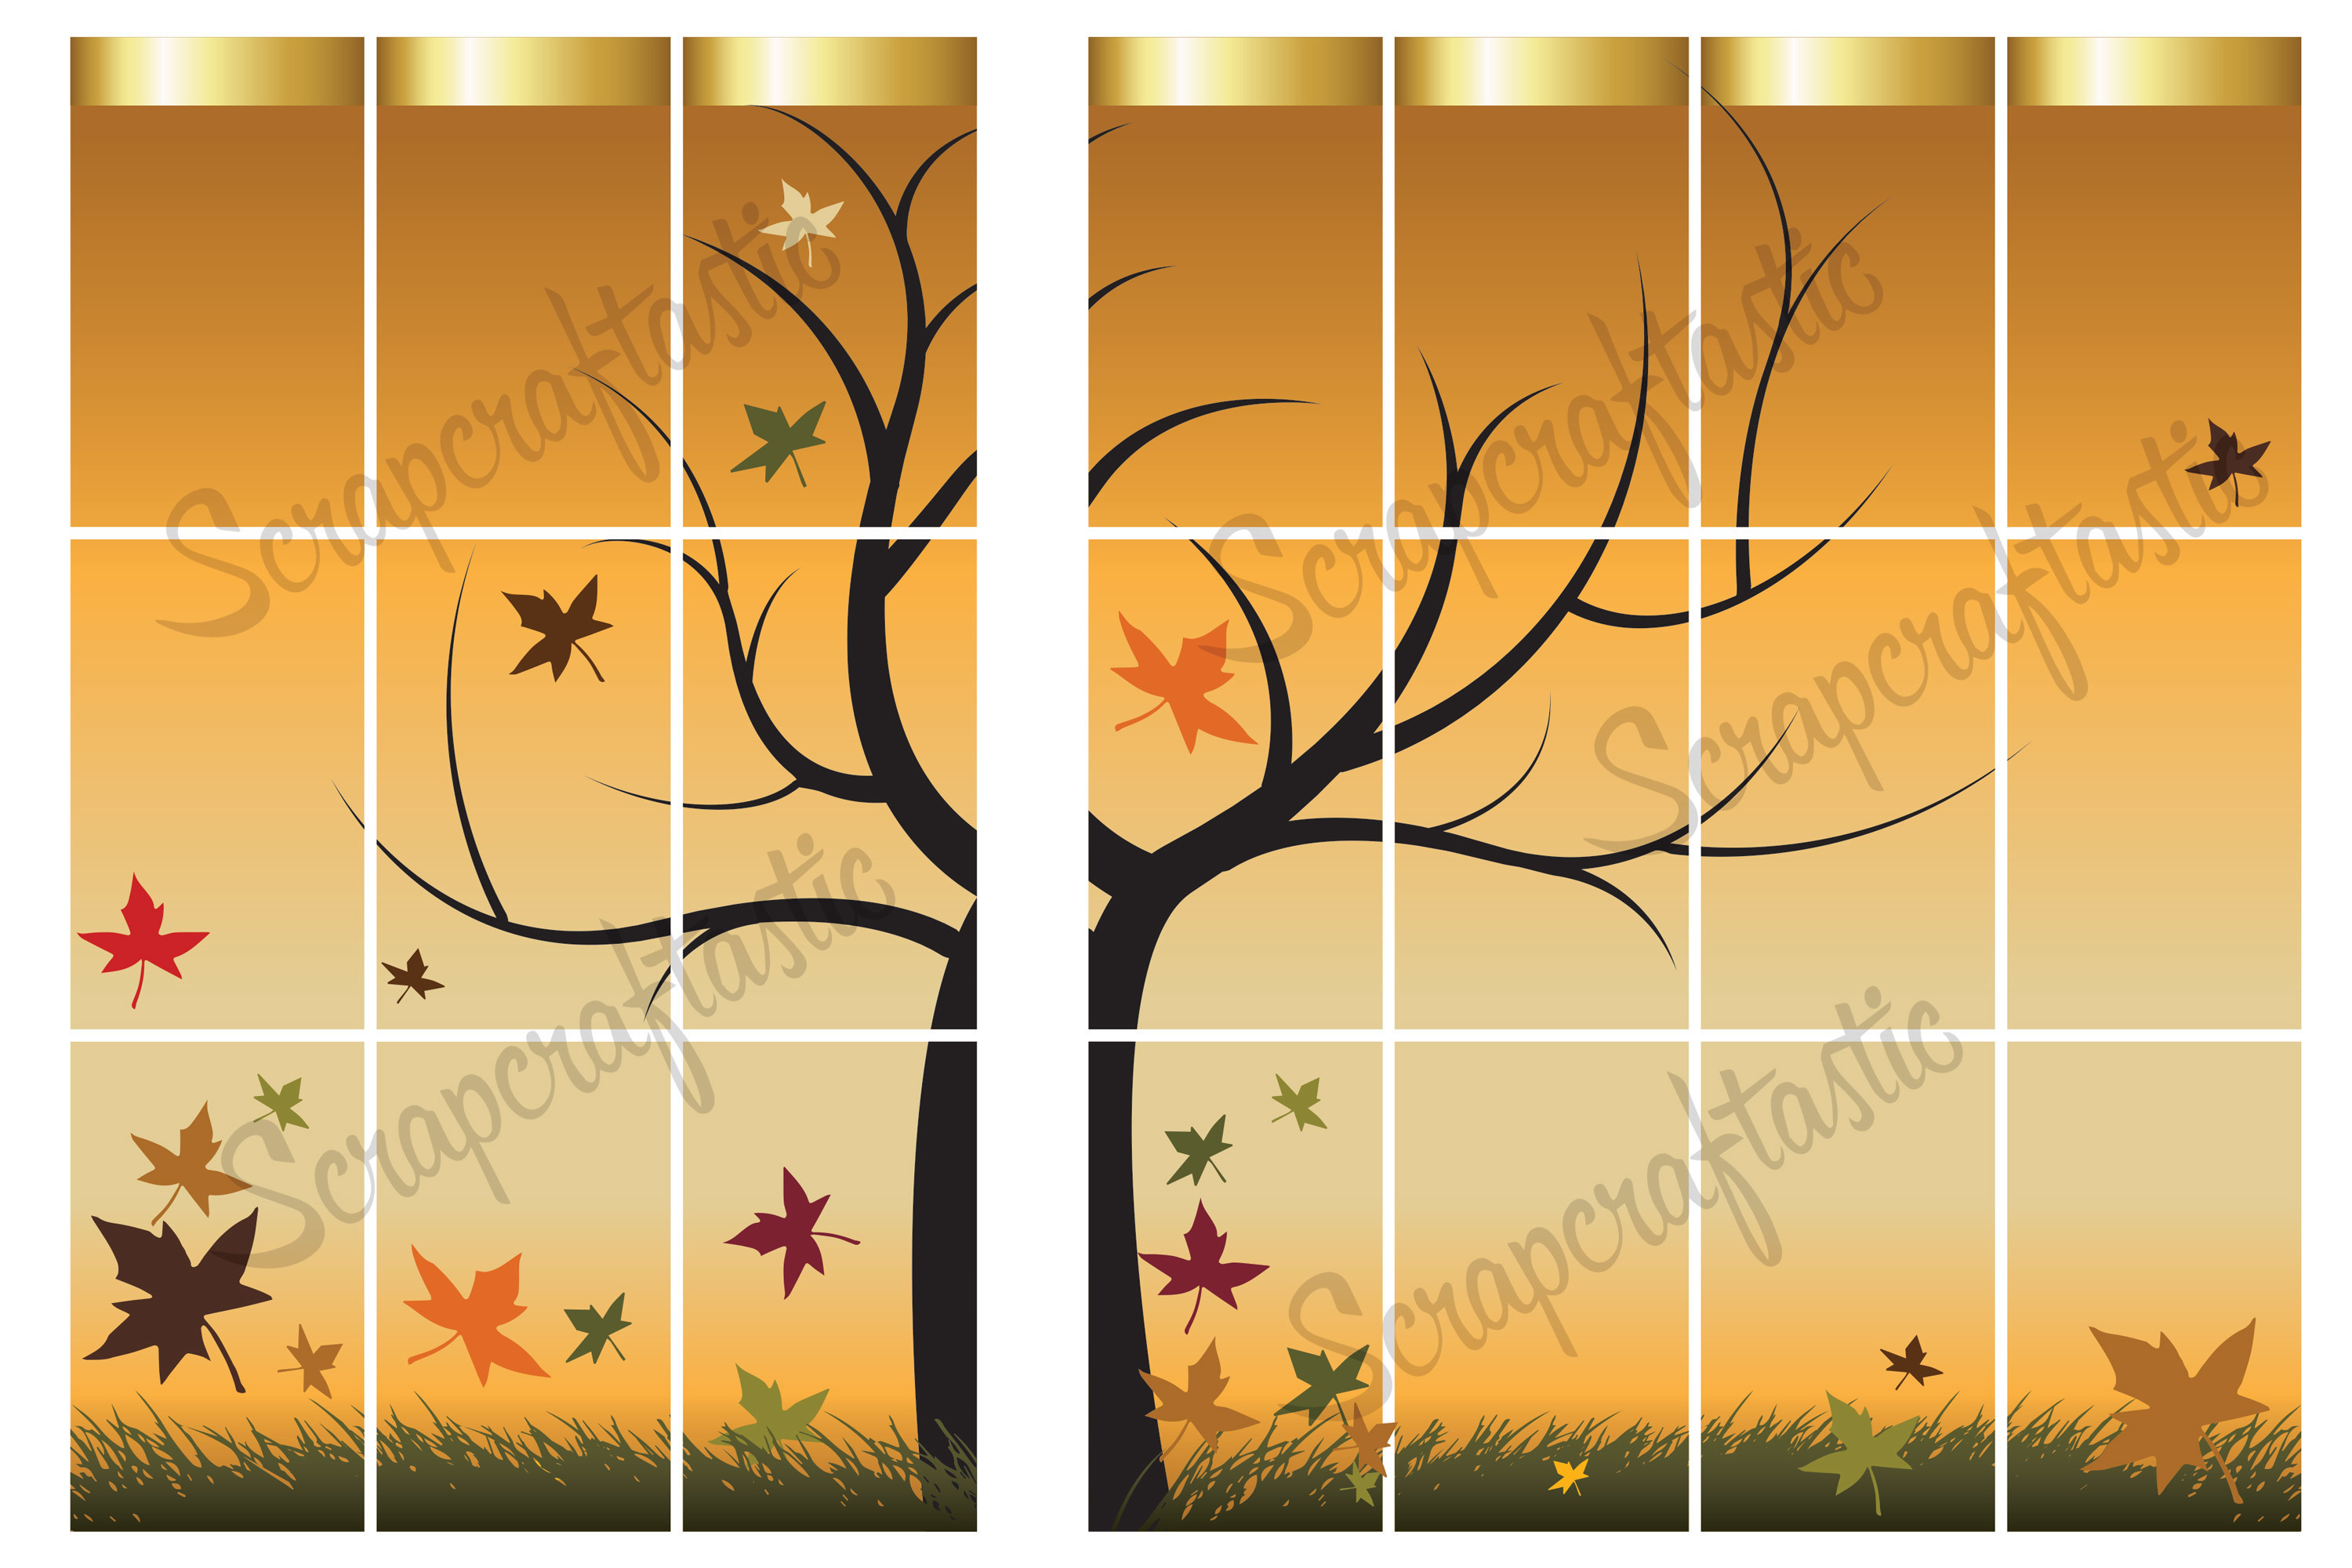 Autumn Printable Planner Sticker Spread for the Classic MAMBI Happy Planner 00033